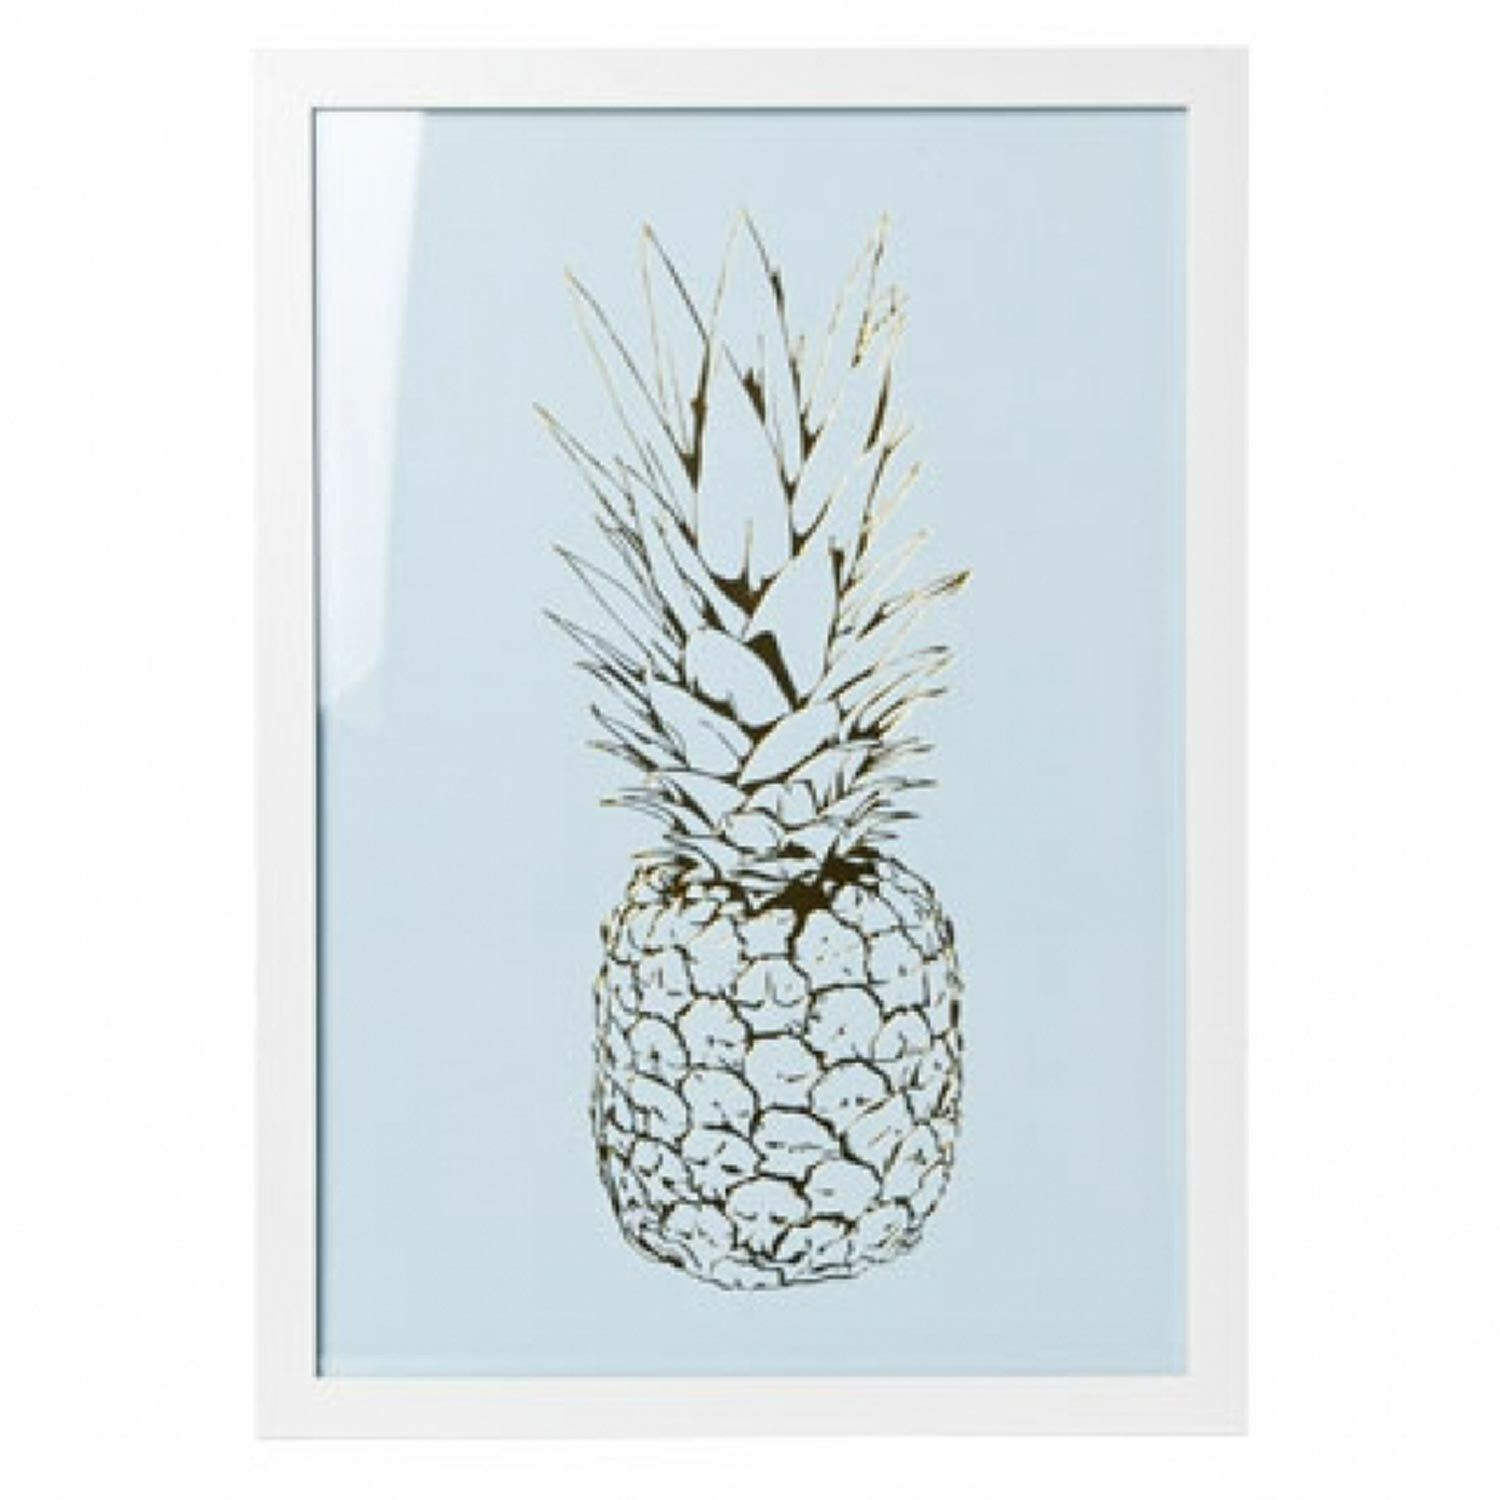 PINEAPPLE, PINEAPPLE ON THE WALL